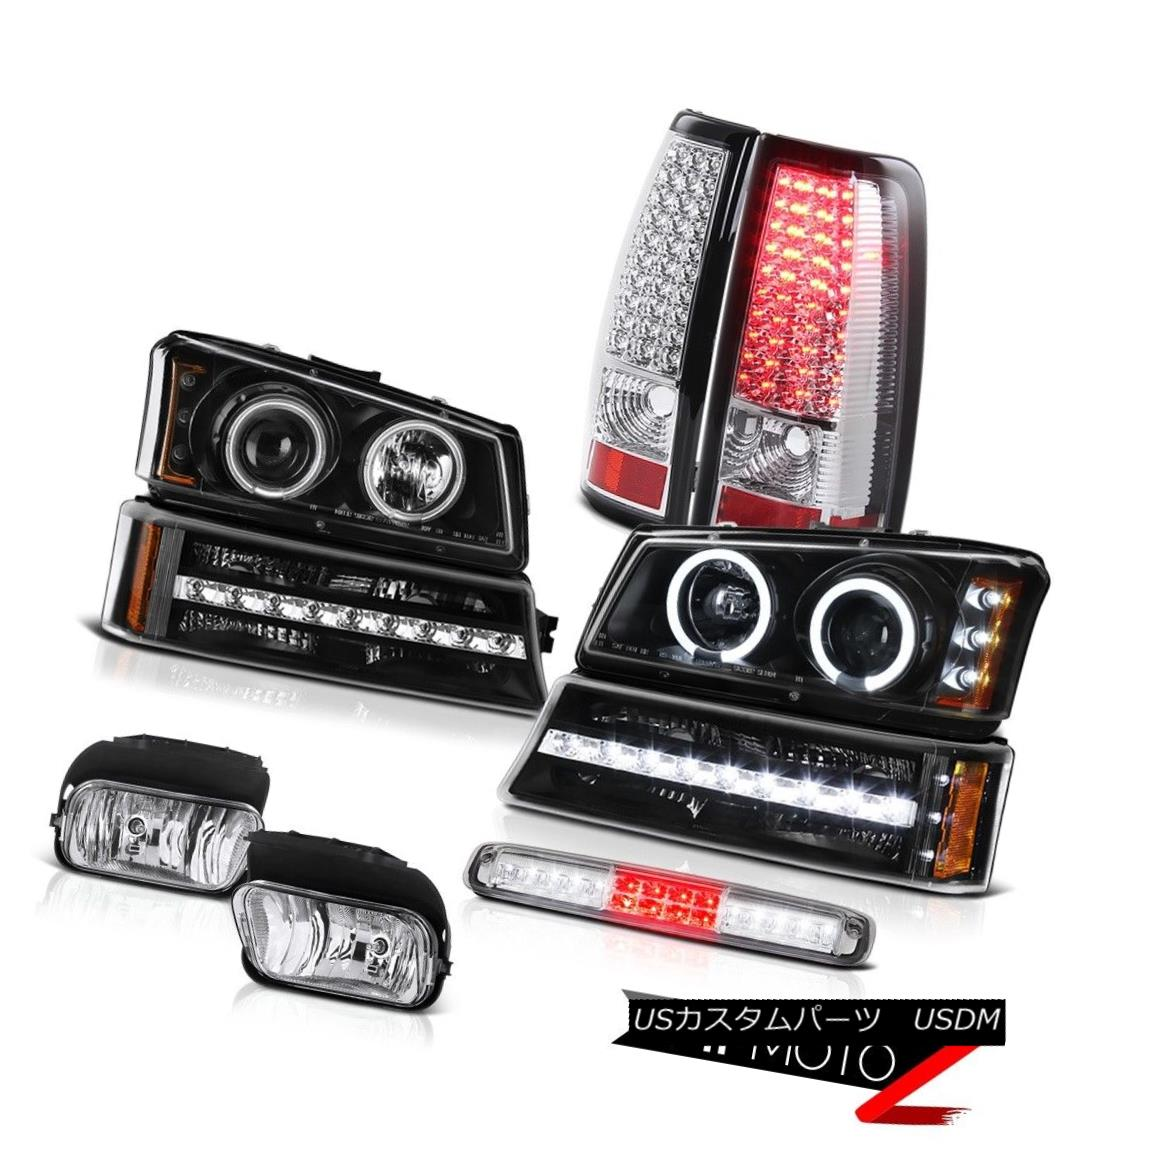 テールライト 03-06 Chevy Silverado 1500 Foglamps High Stop Light Signal Headlights Taillights 03-06 Chevy Silverado 1500 Foglampsハイストップライトシグナルヘッドライトテールライト